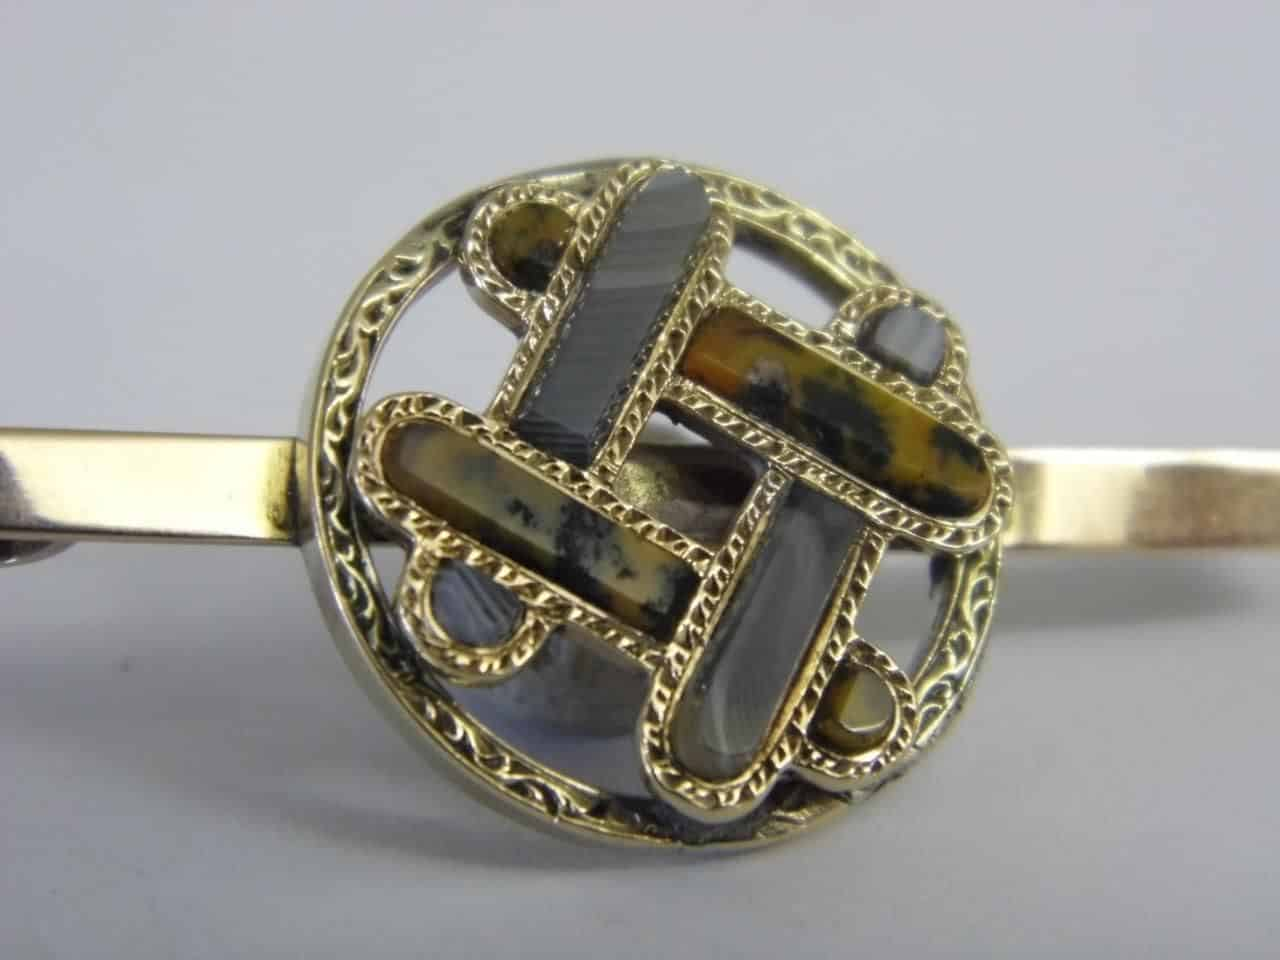 1992-A-SUPERB-EXQUISITE-ANTIQUE-9CT-GOLD-SCOTTISH-AGATE-PIN-BROOCH